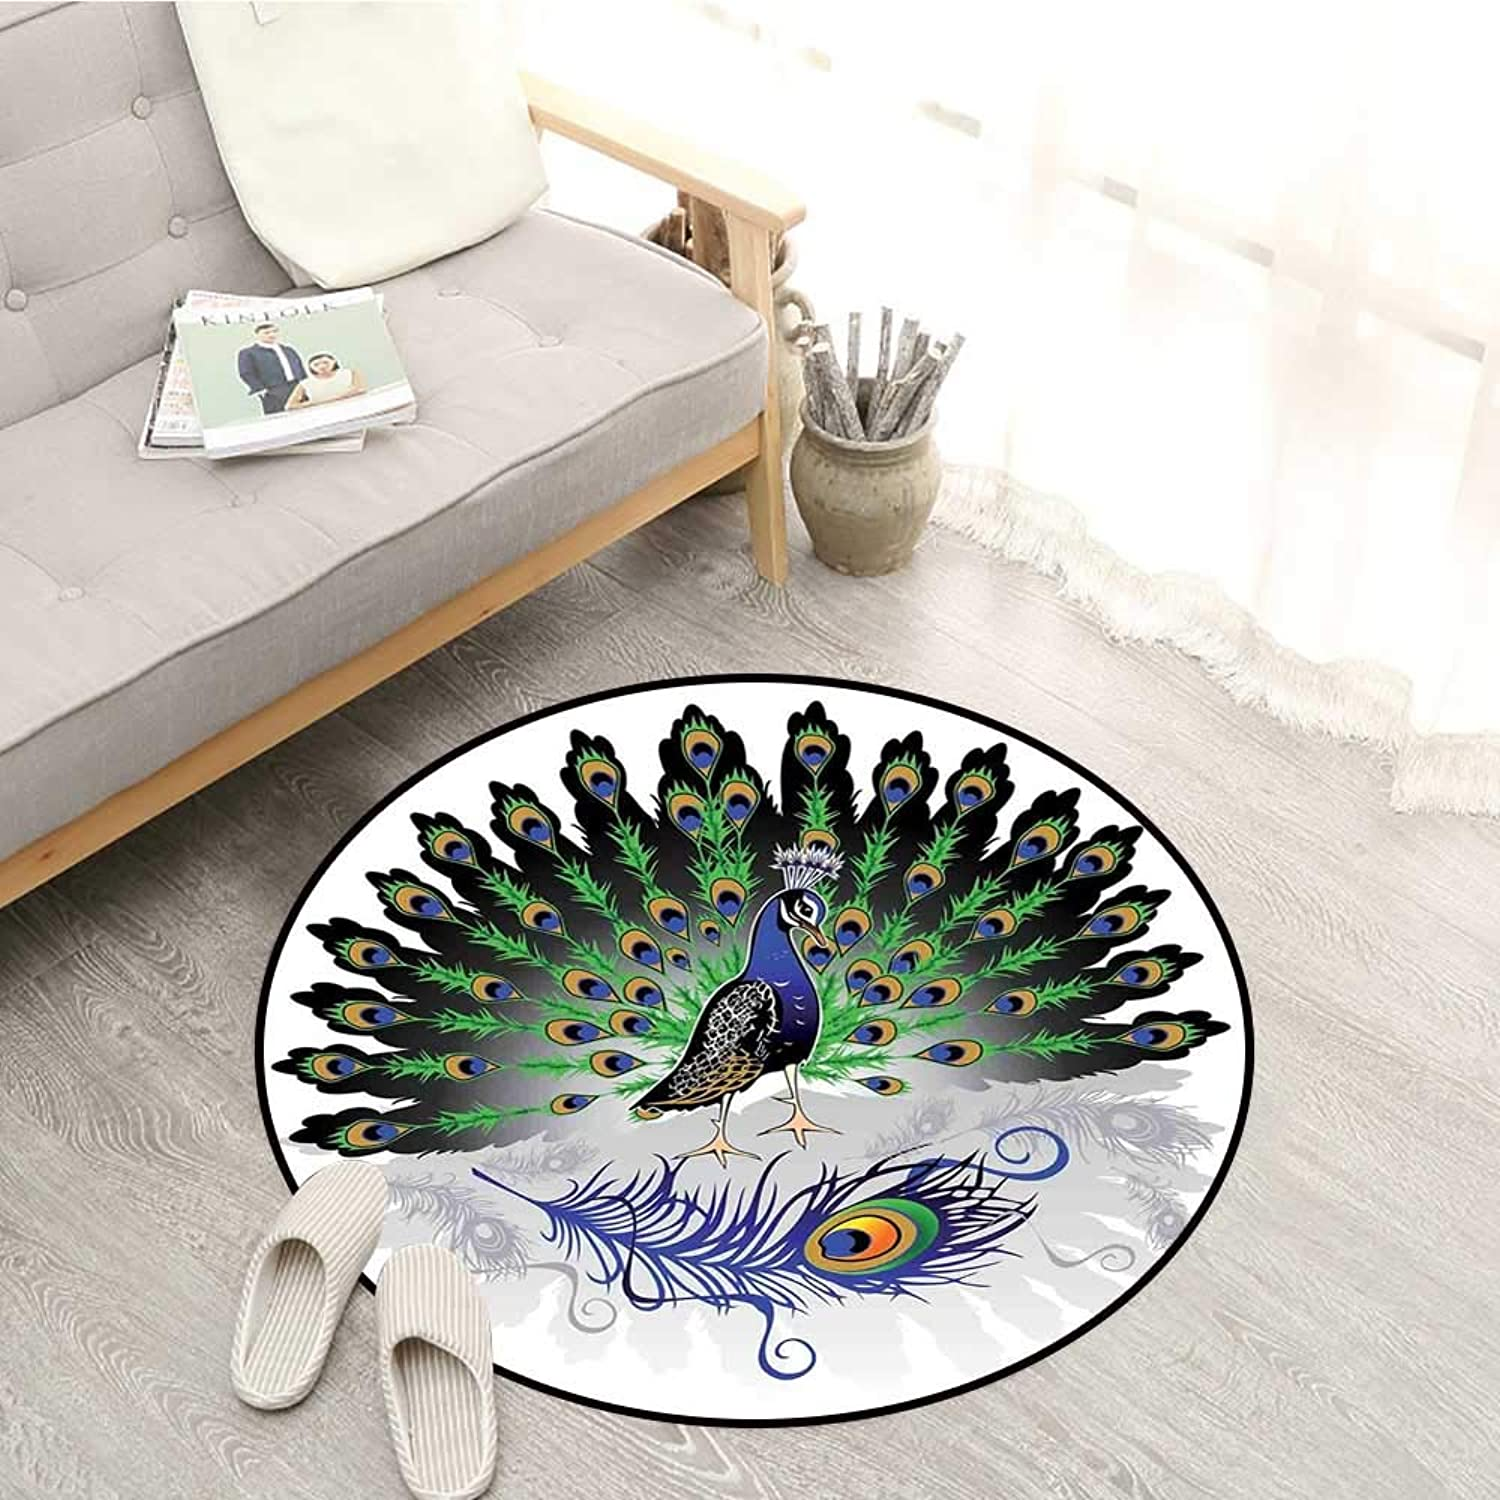 Peacock Decor Skid-Resistant Rugs Male Peacock with Open Tail Reflection Illustration Crowned Majestic Bird Tropics Sofa Coffee Table Mat 4'3